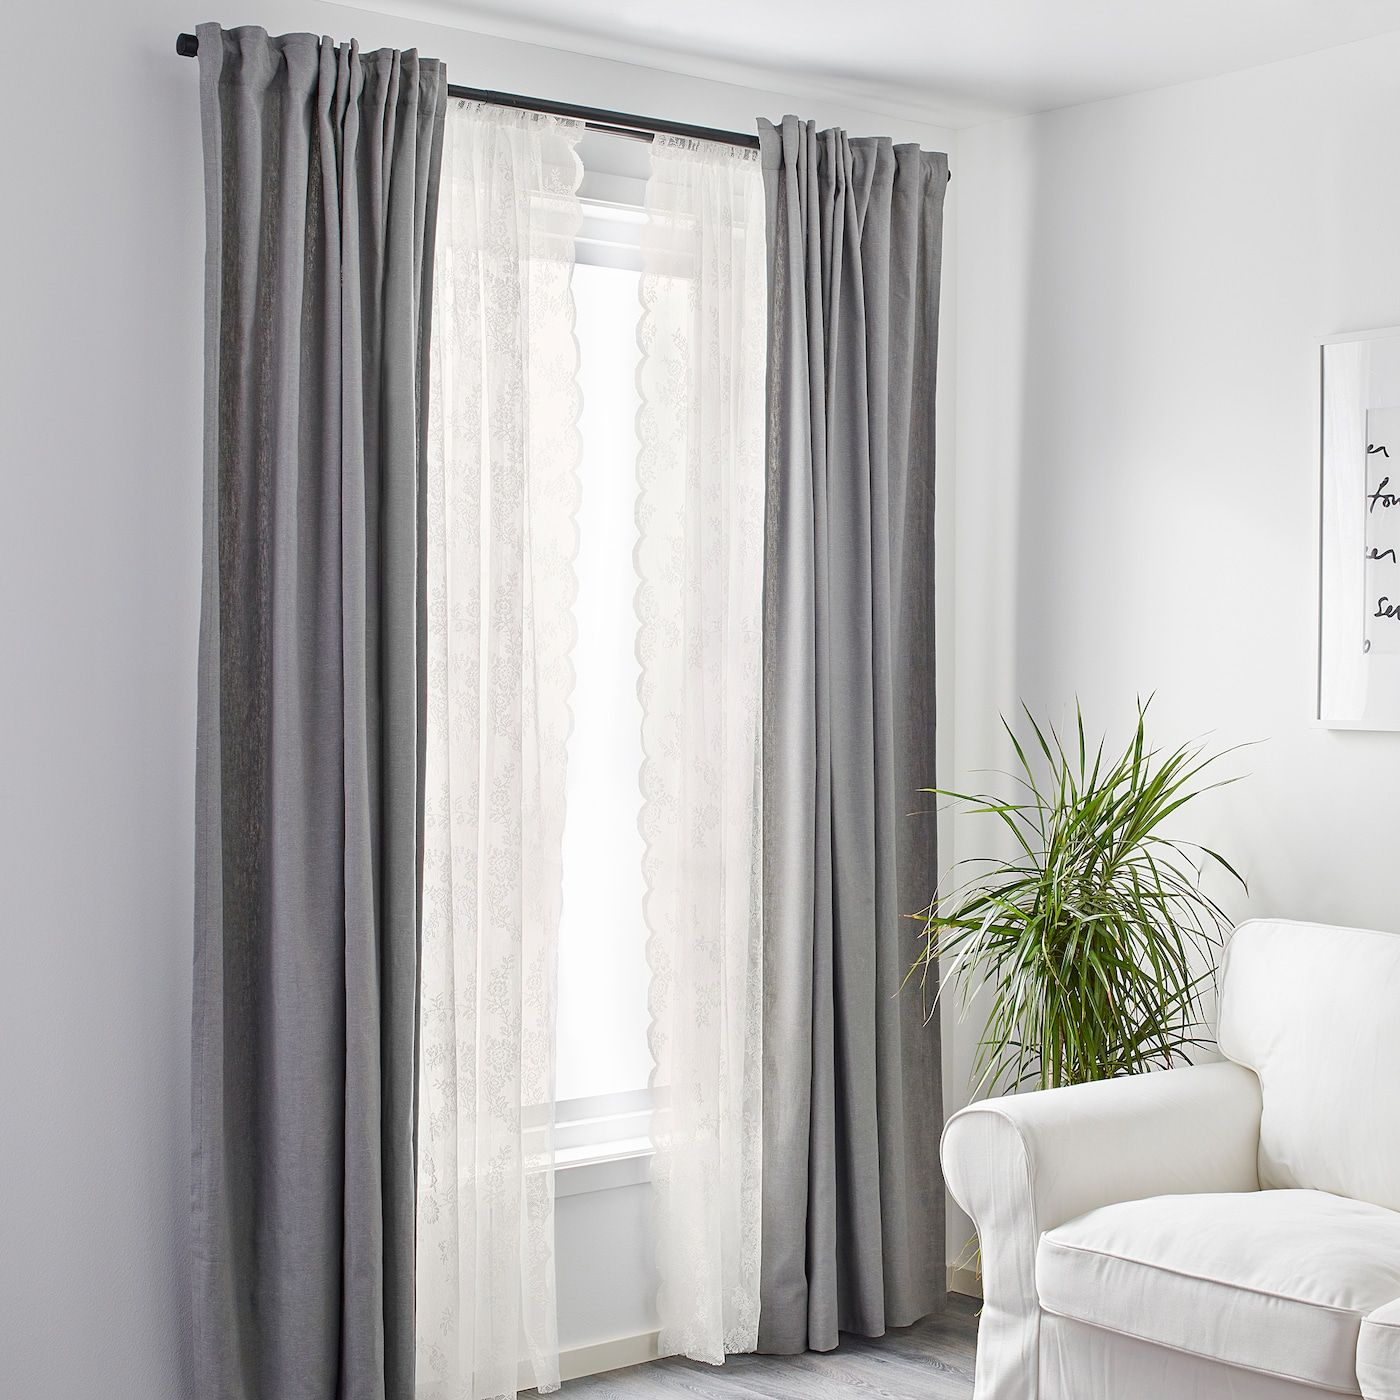 Alvine Spets Lace Curtains 1 Pair Off White Ikea Curtains Curtains Living Room Lace Curtains